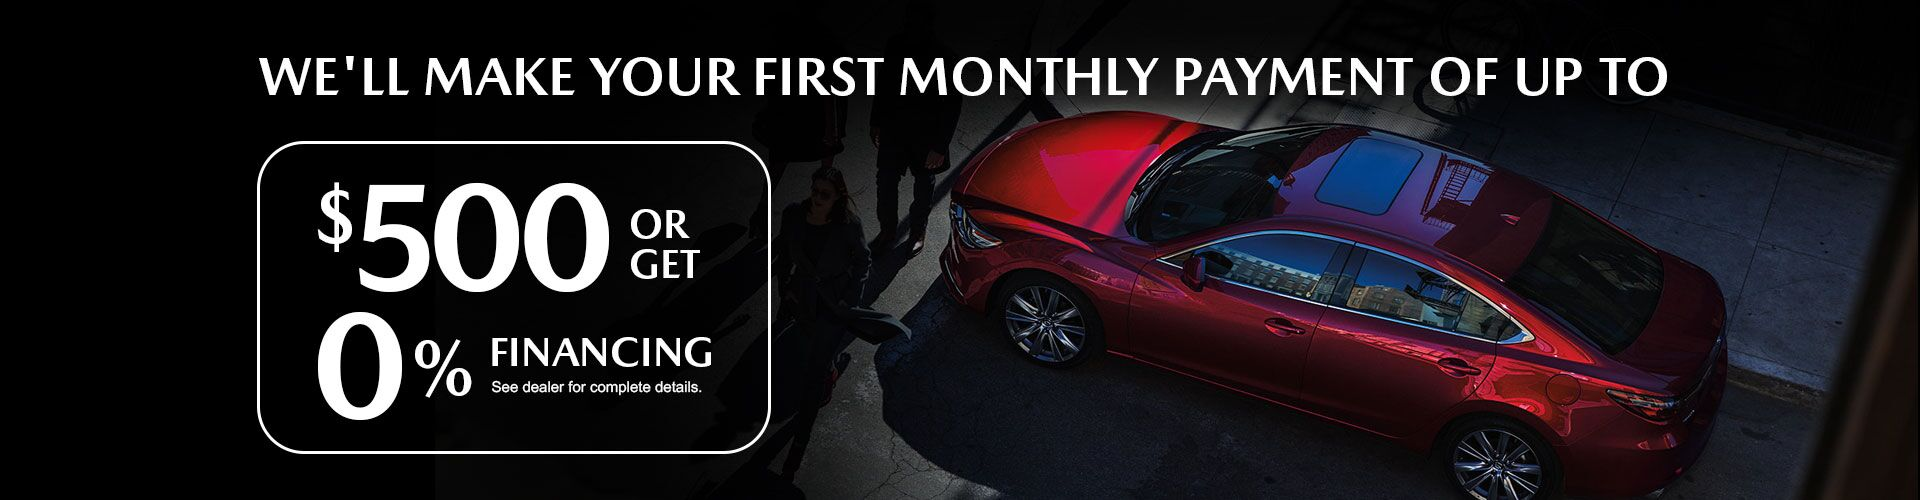 1st Monthly Payment